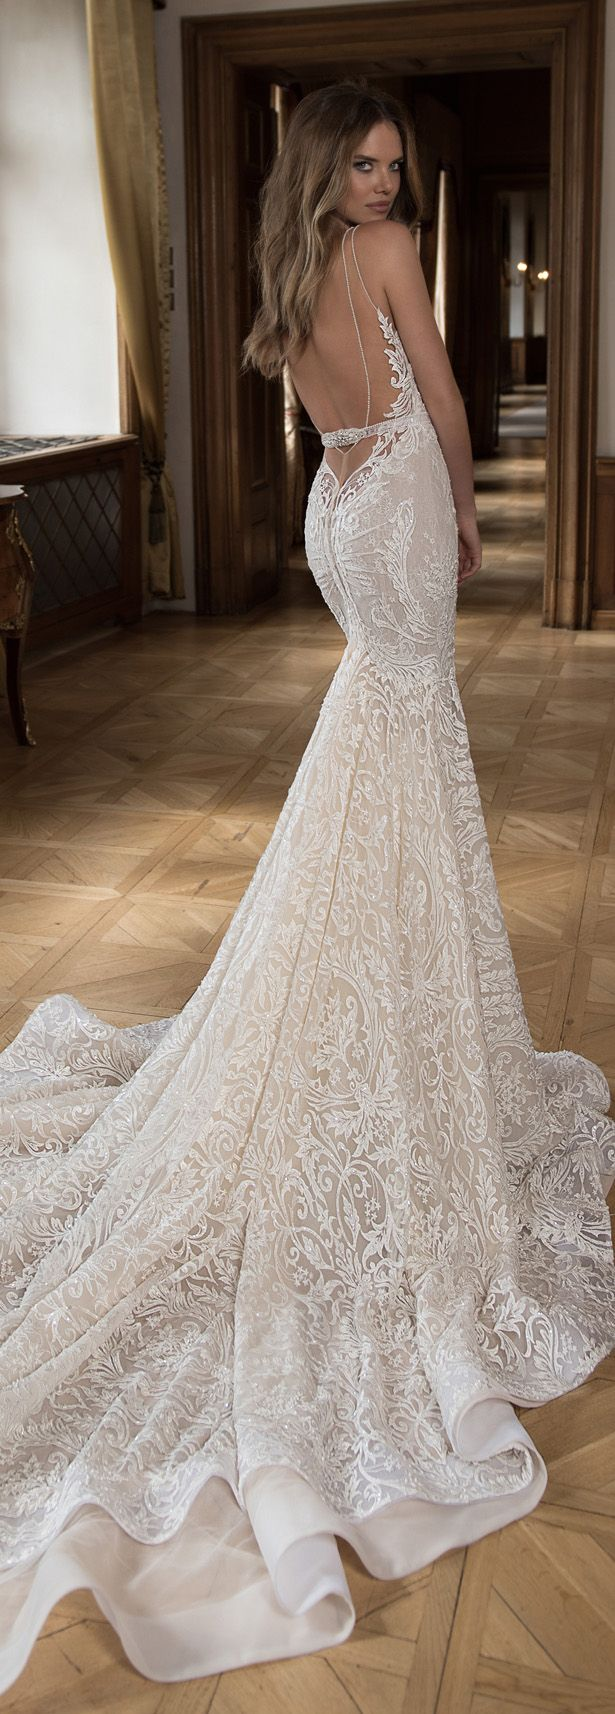 Wedding Dress by Berta Bridal Fall 2015 | this dress is giving me so much…